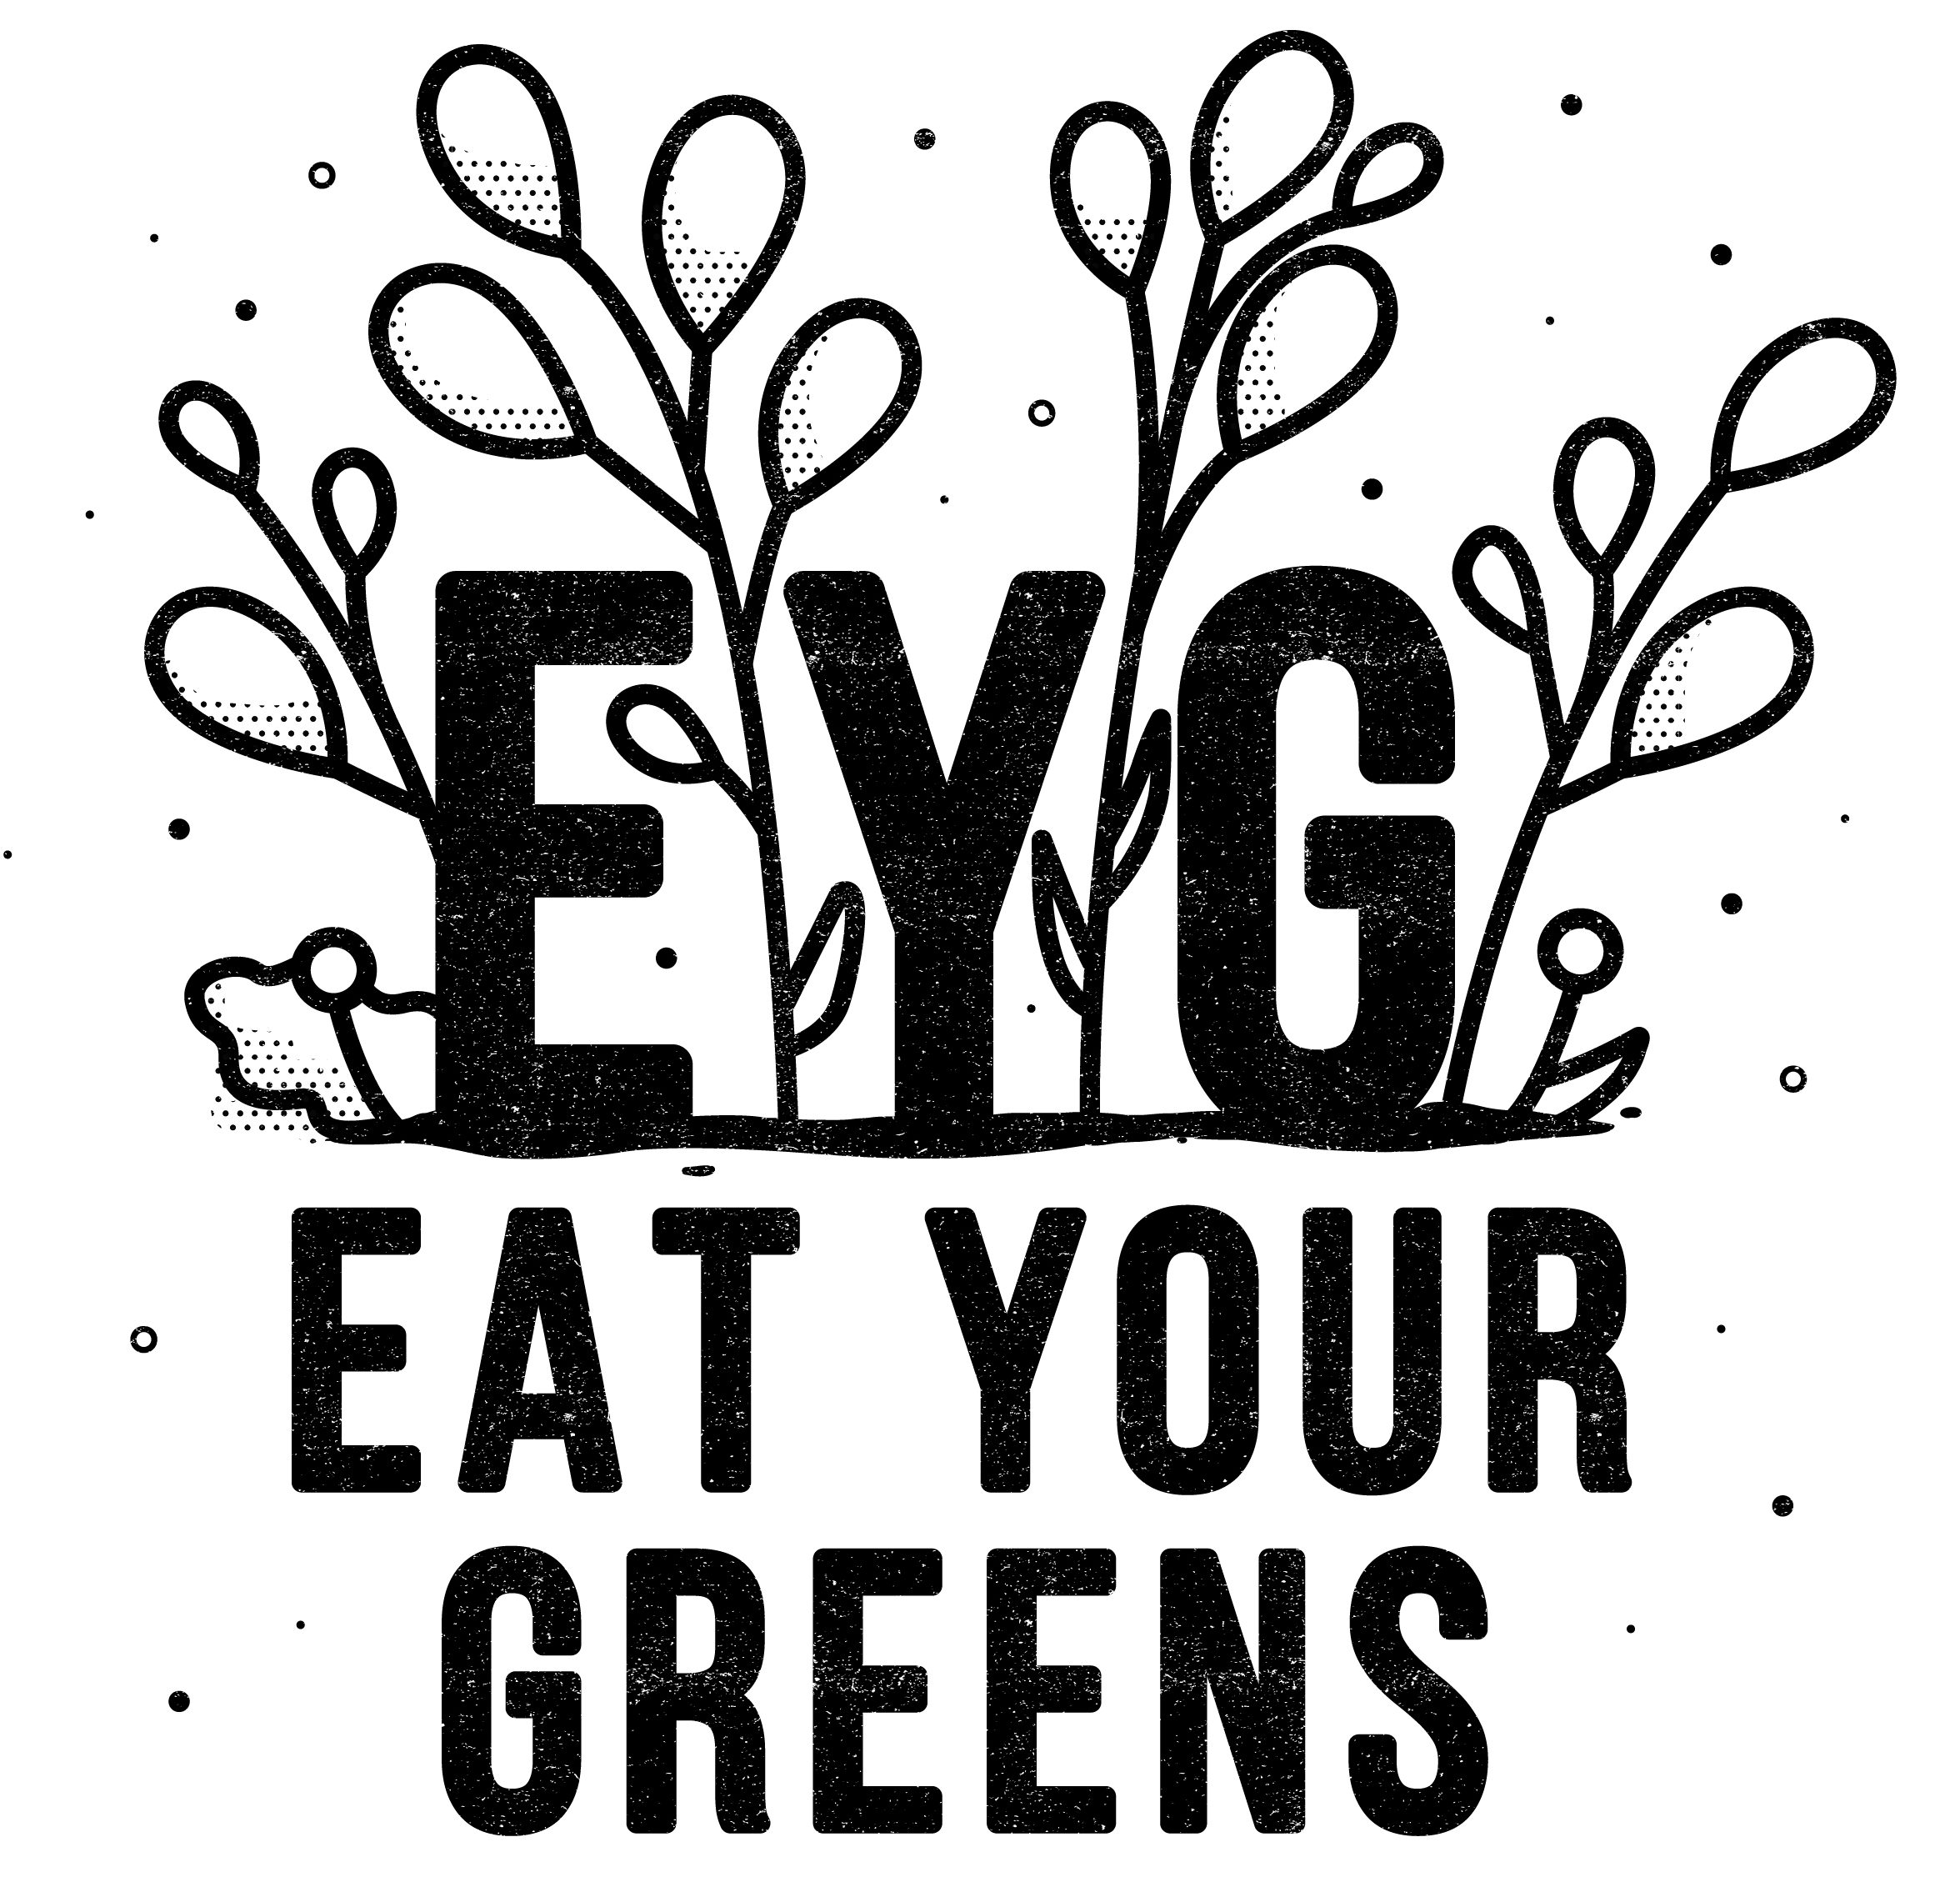 eat your greens bristol